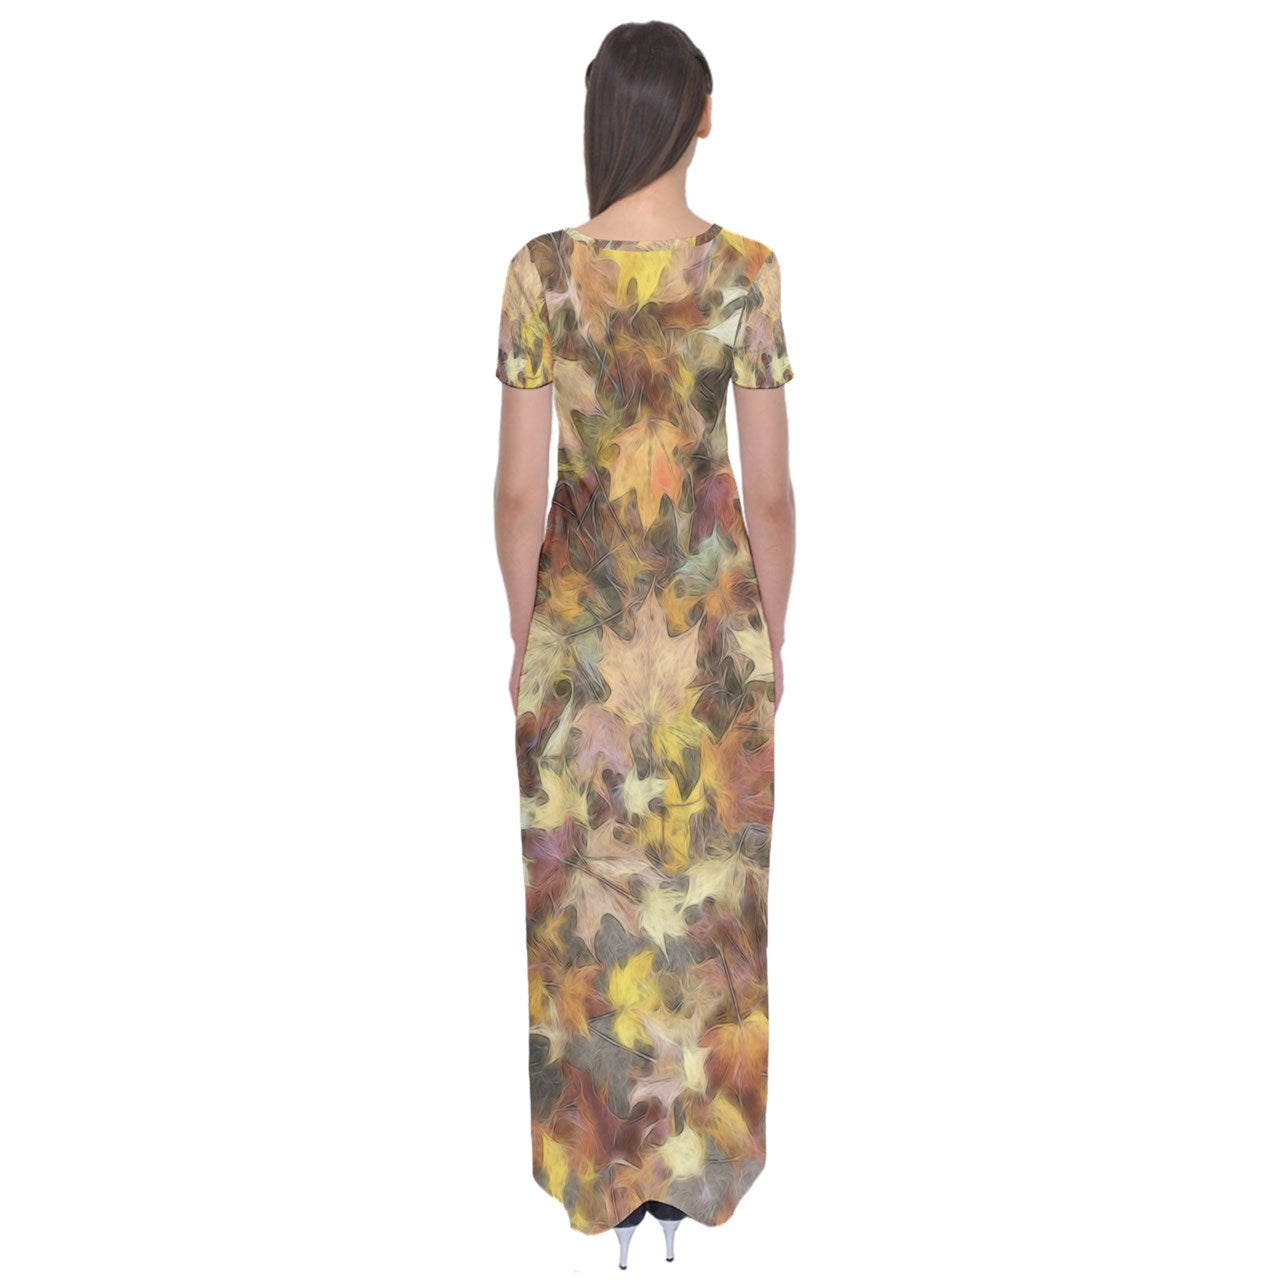 Late October Leaves Light Short Sleeve Maxi Dress